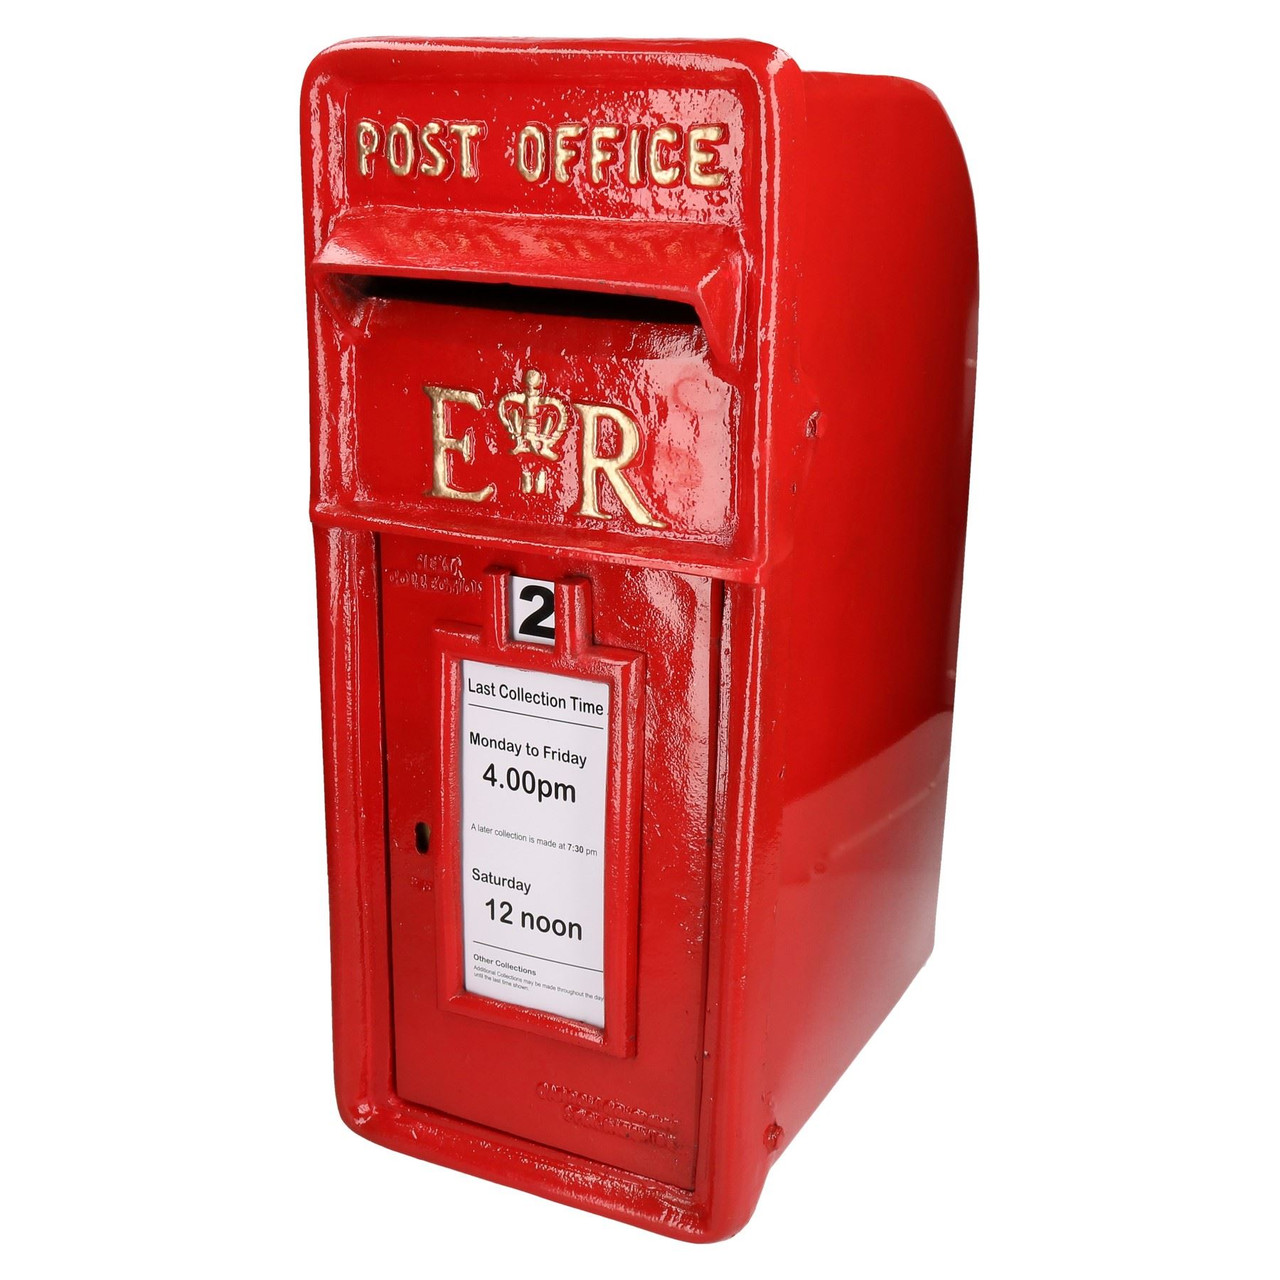 Royal Mail Letter Box.Er Royal Mail Post Letter Box Replica Cast Iron Red Post Office Lockable Gb